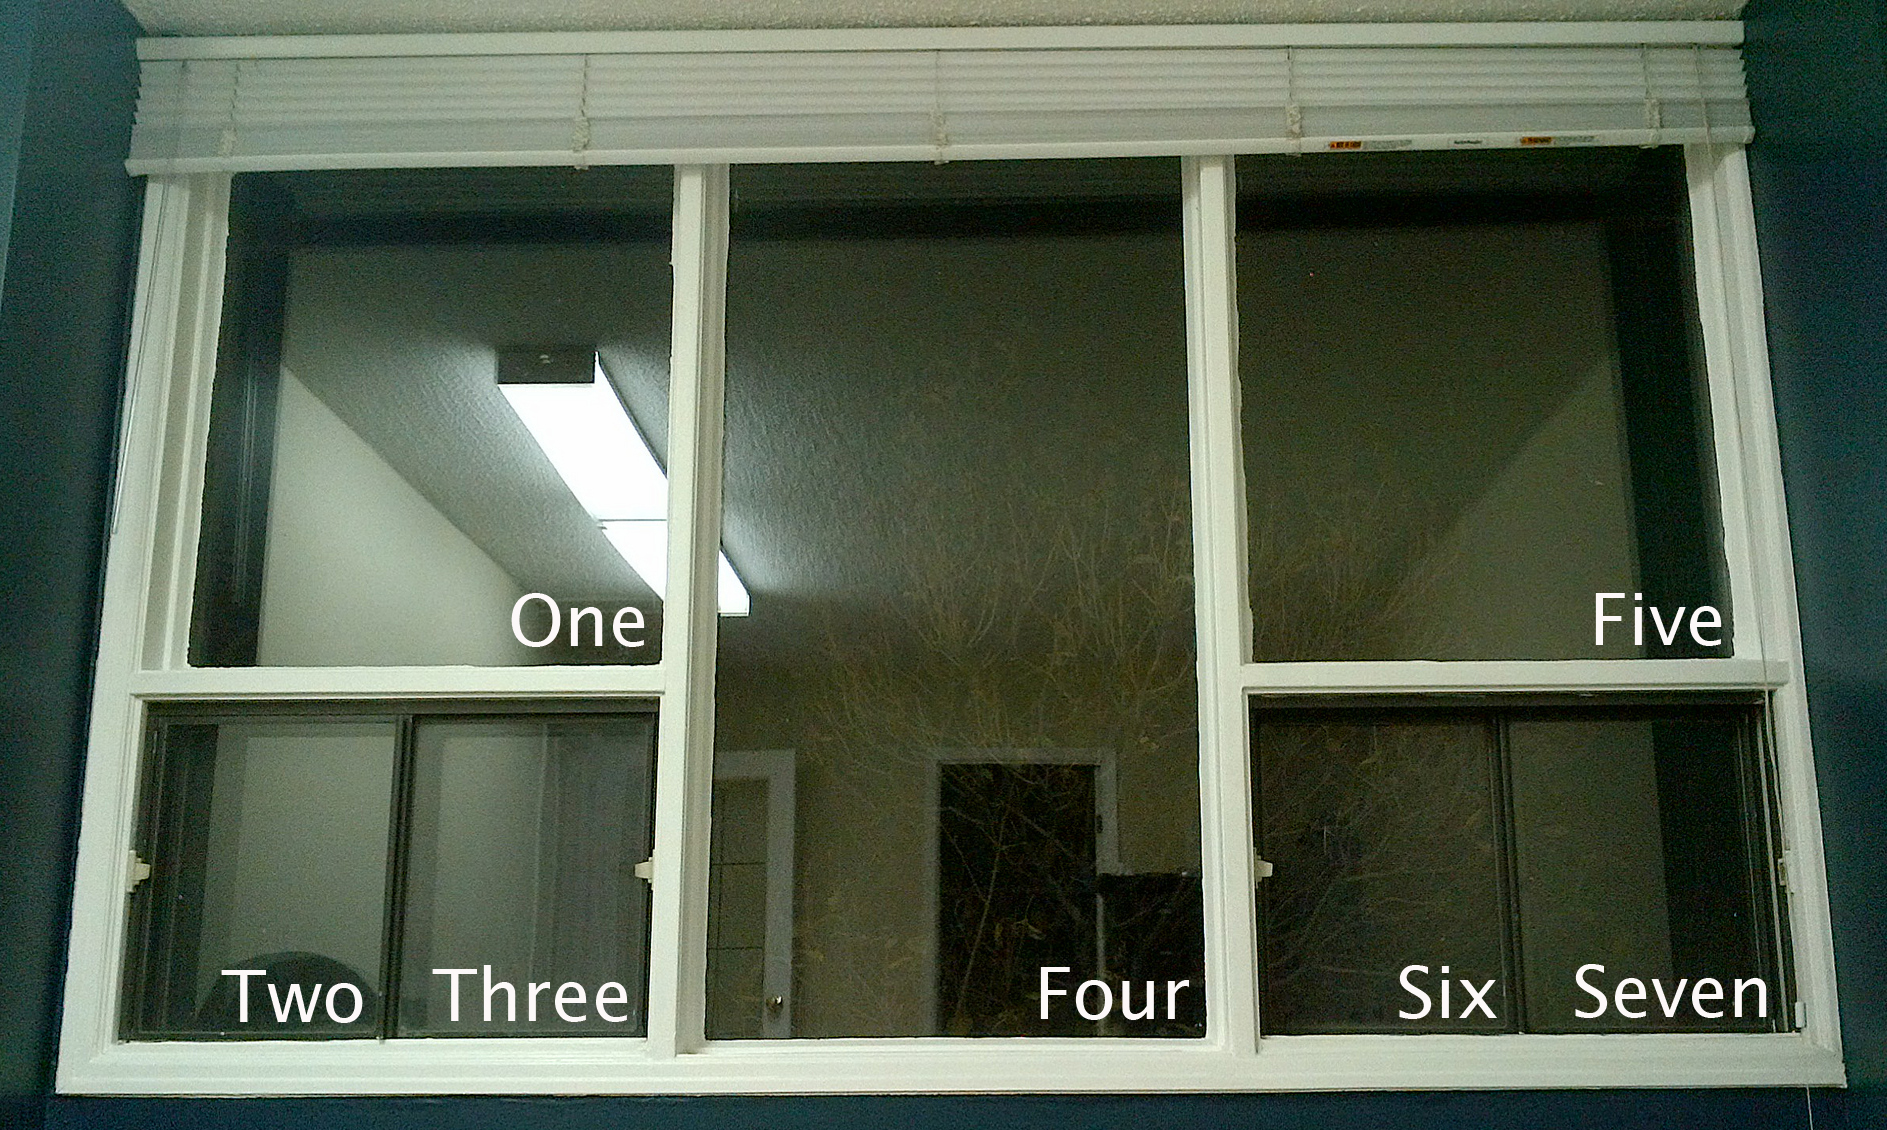 A diagram showing a window separated into multiple panes.